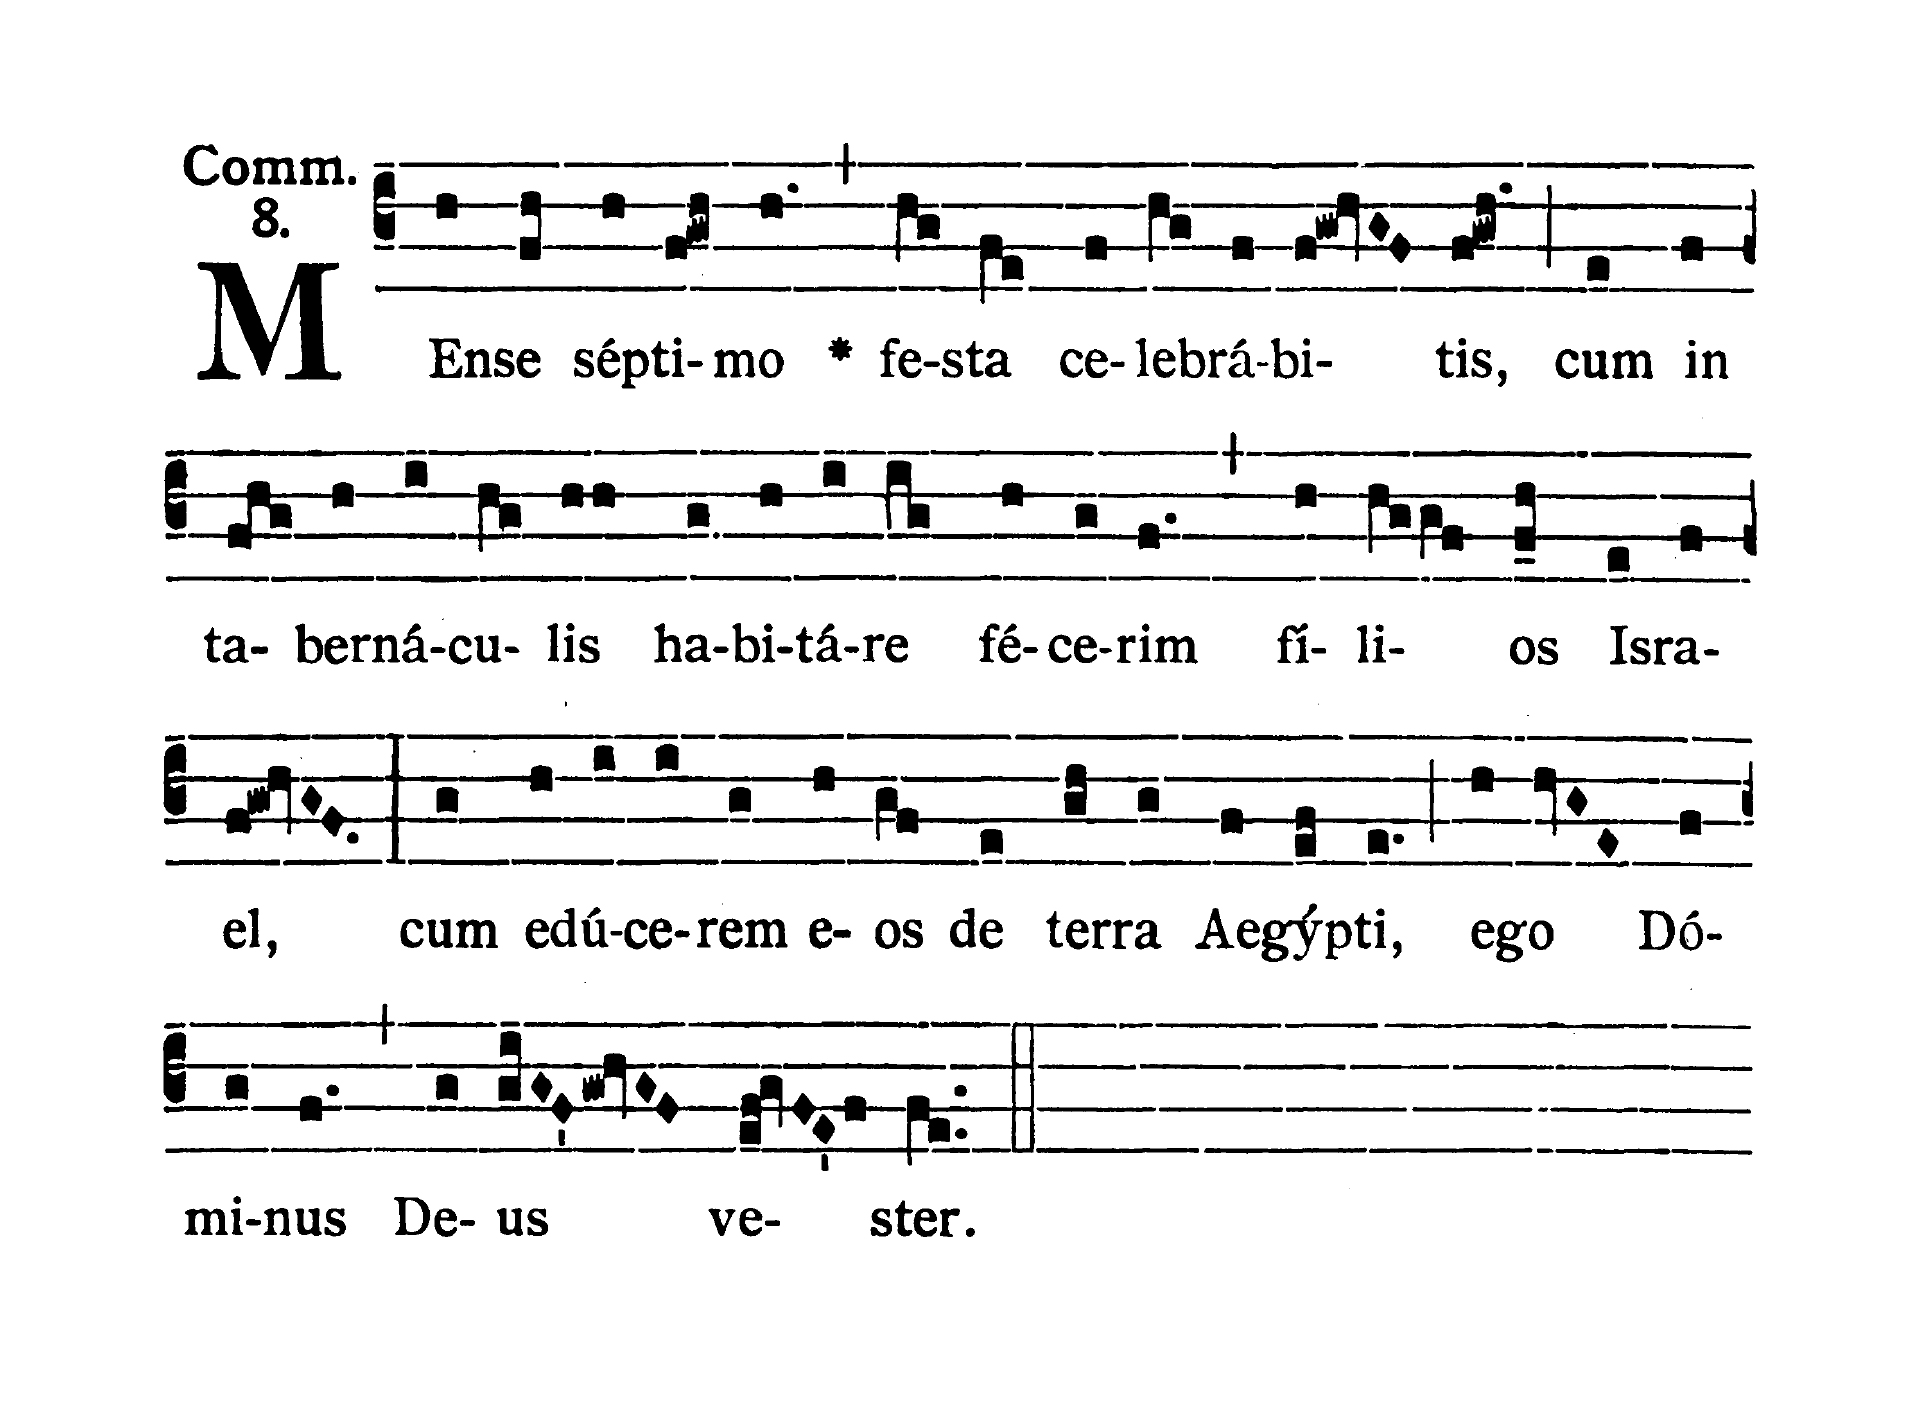 Sabbato Quatuor Temporum Septembris (Ember Saturday of September) - Communio (Mense septimo)